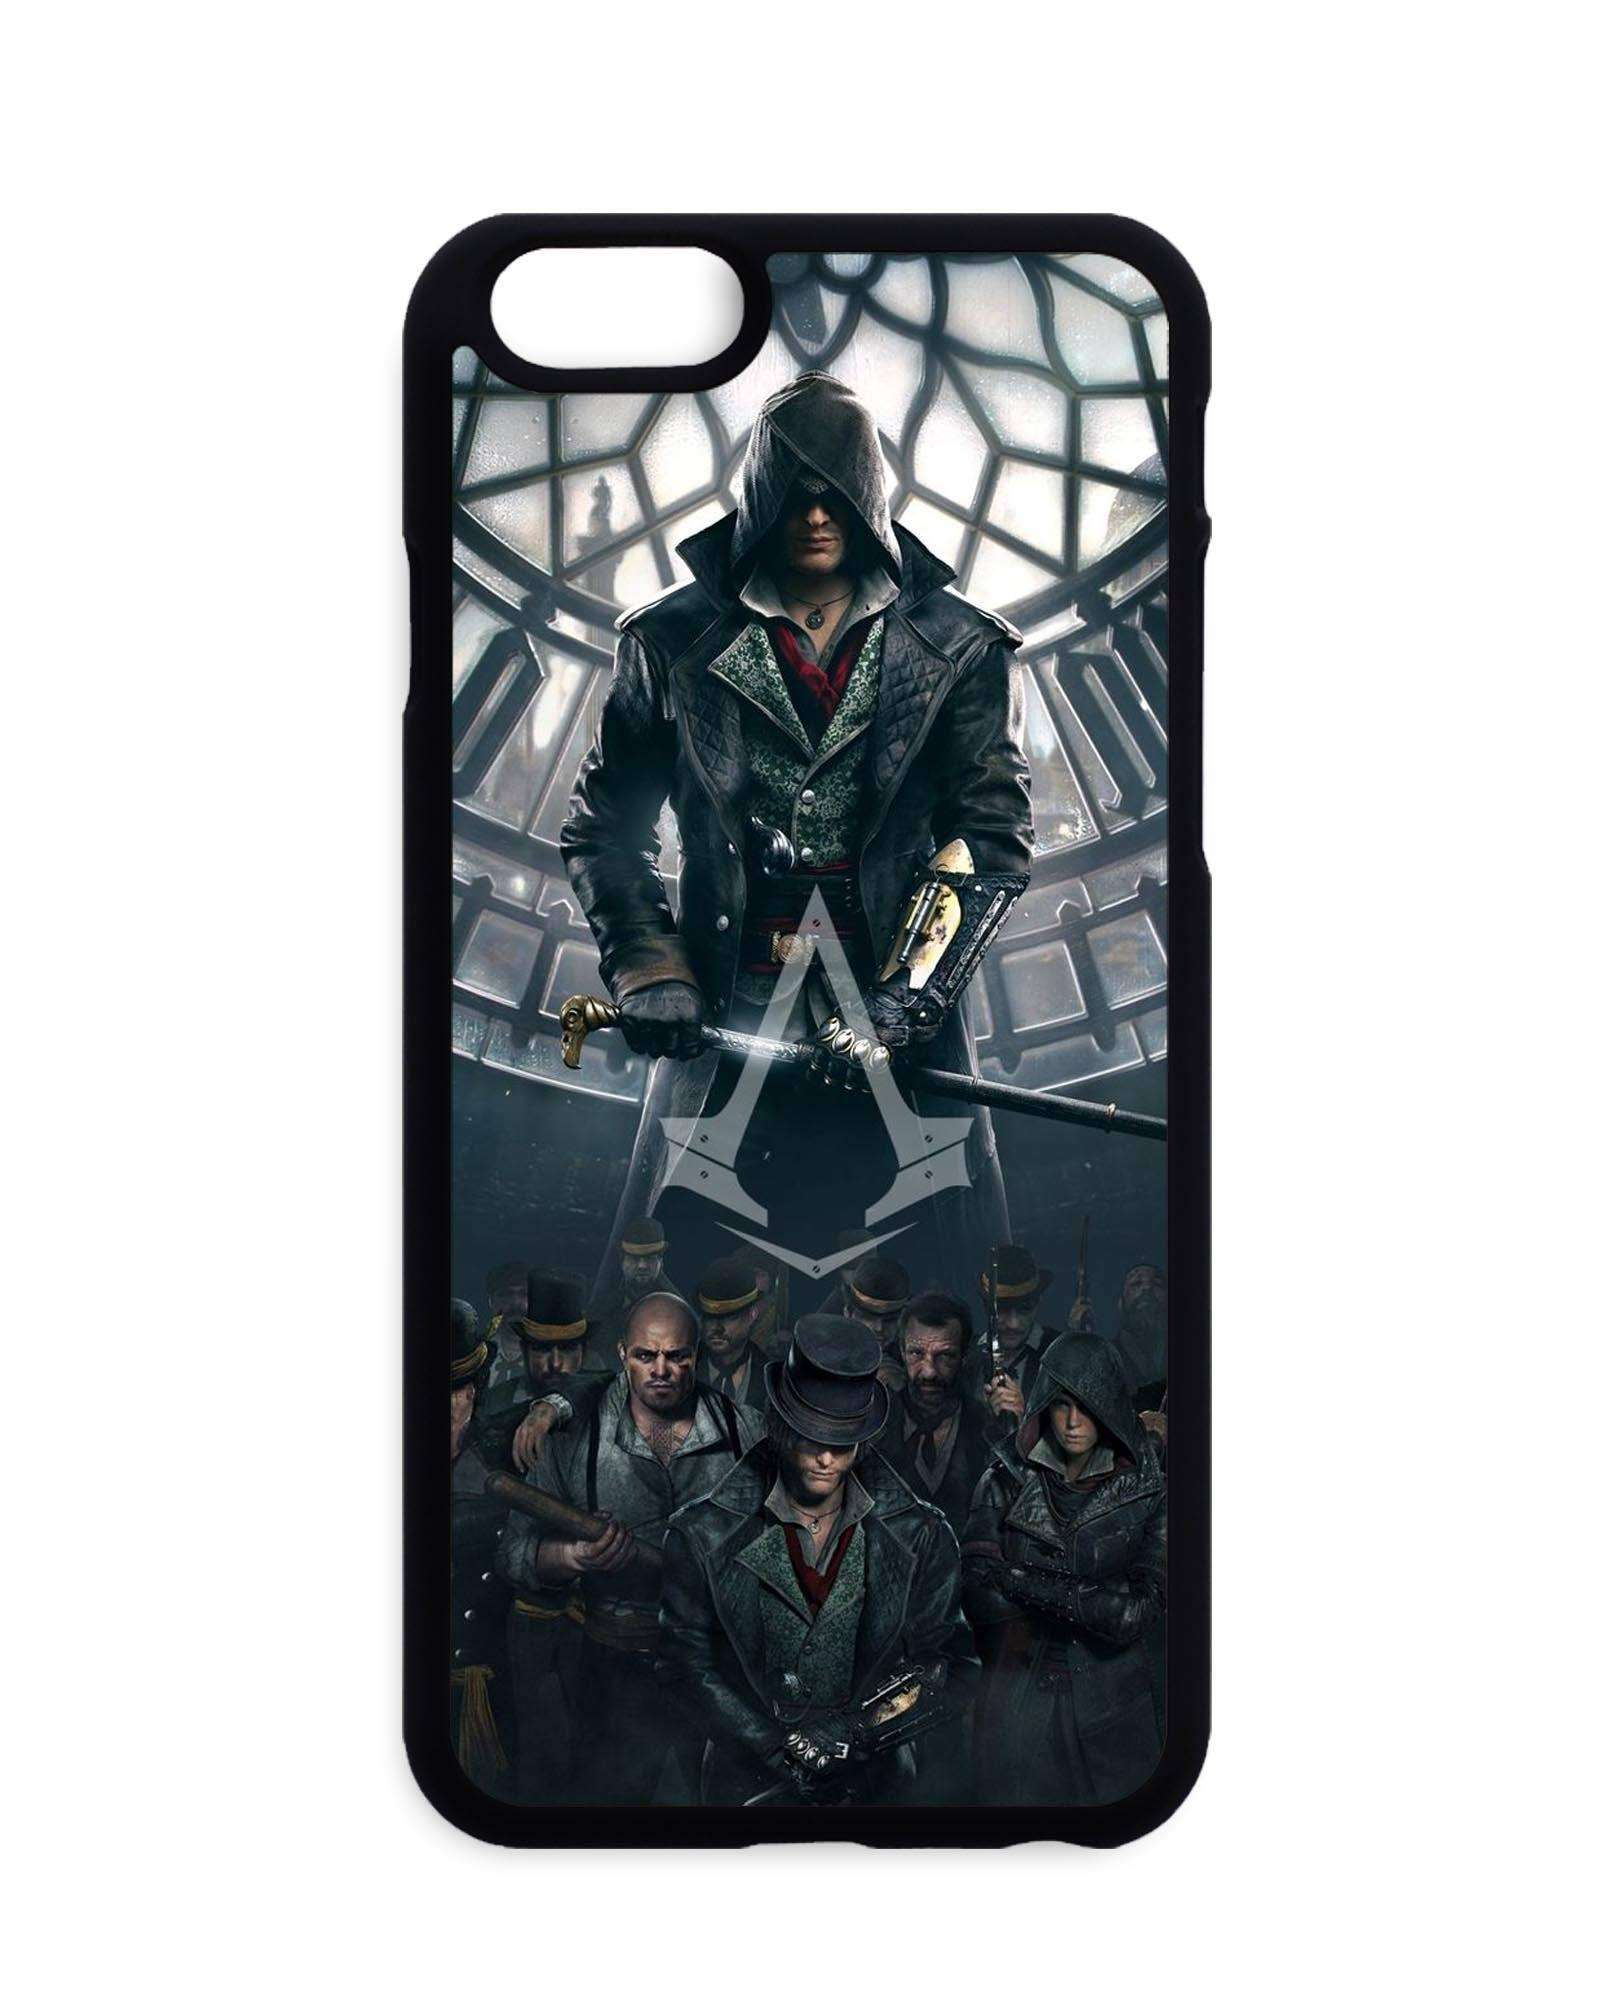 Coques - Coque Assasin's Creed Revolution